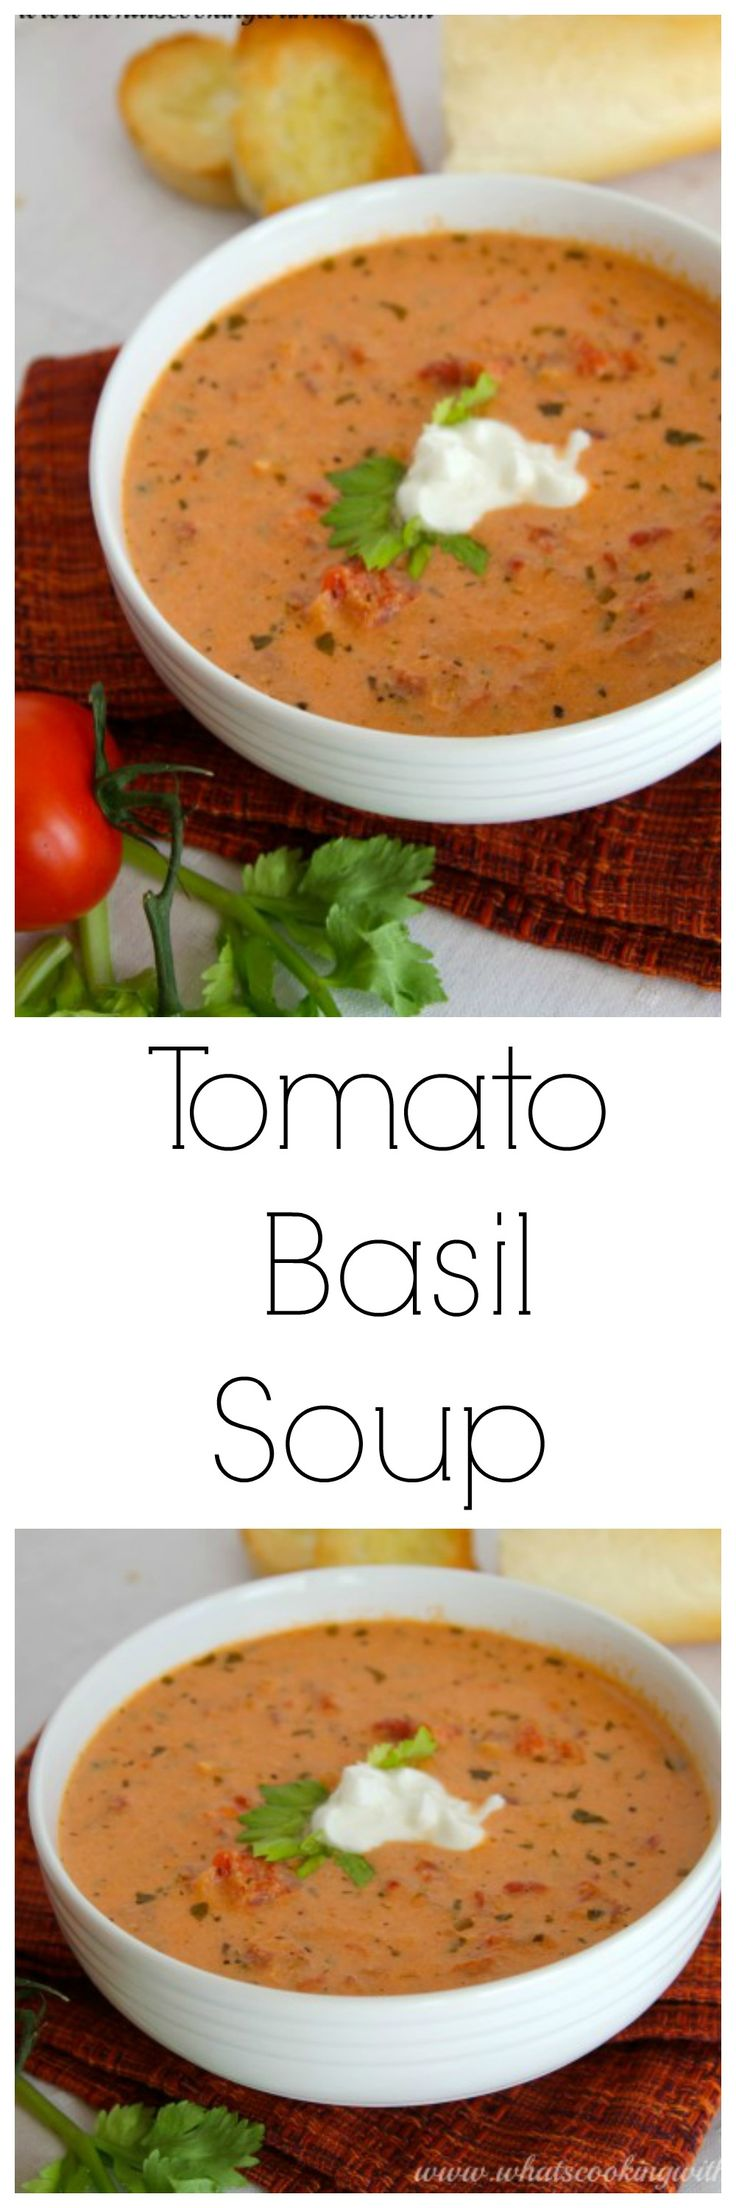 Tomato Basil Soup on www.cookingwithruthie.com is simple to make and a perfect weeknight meal!